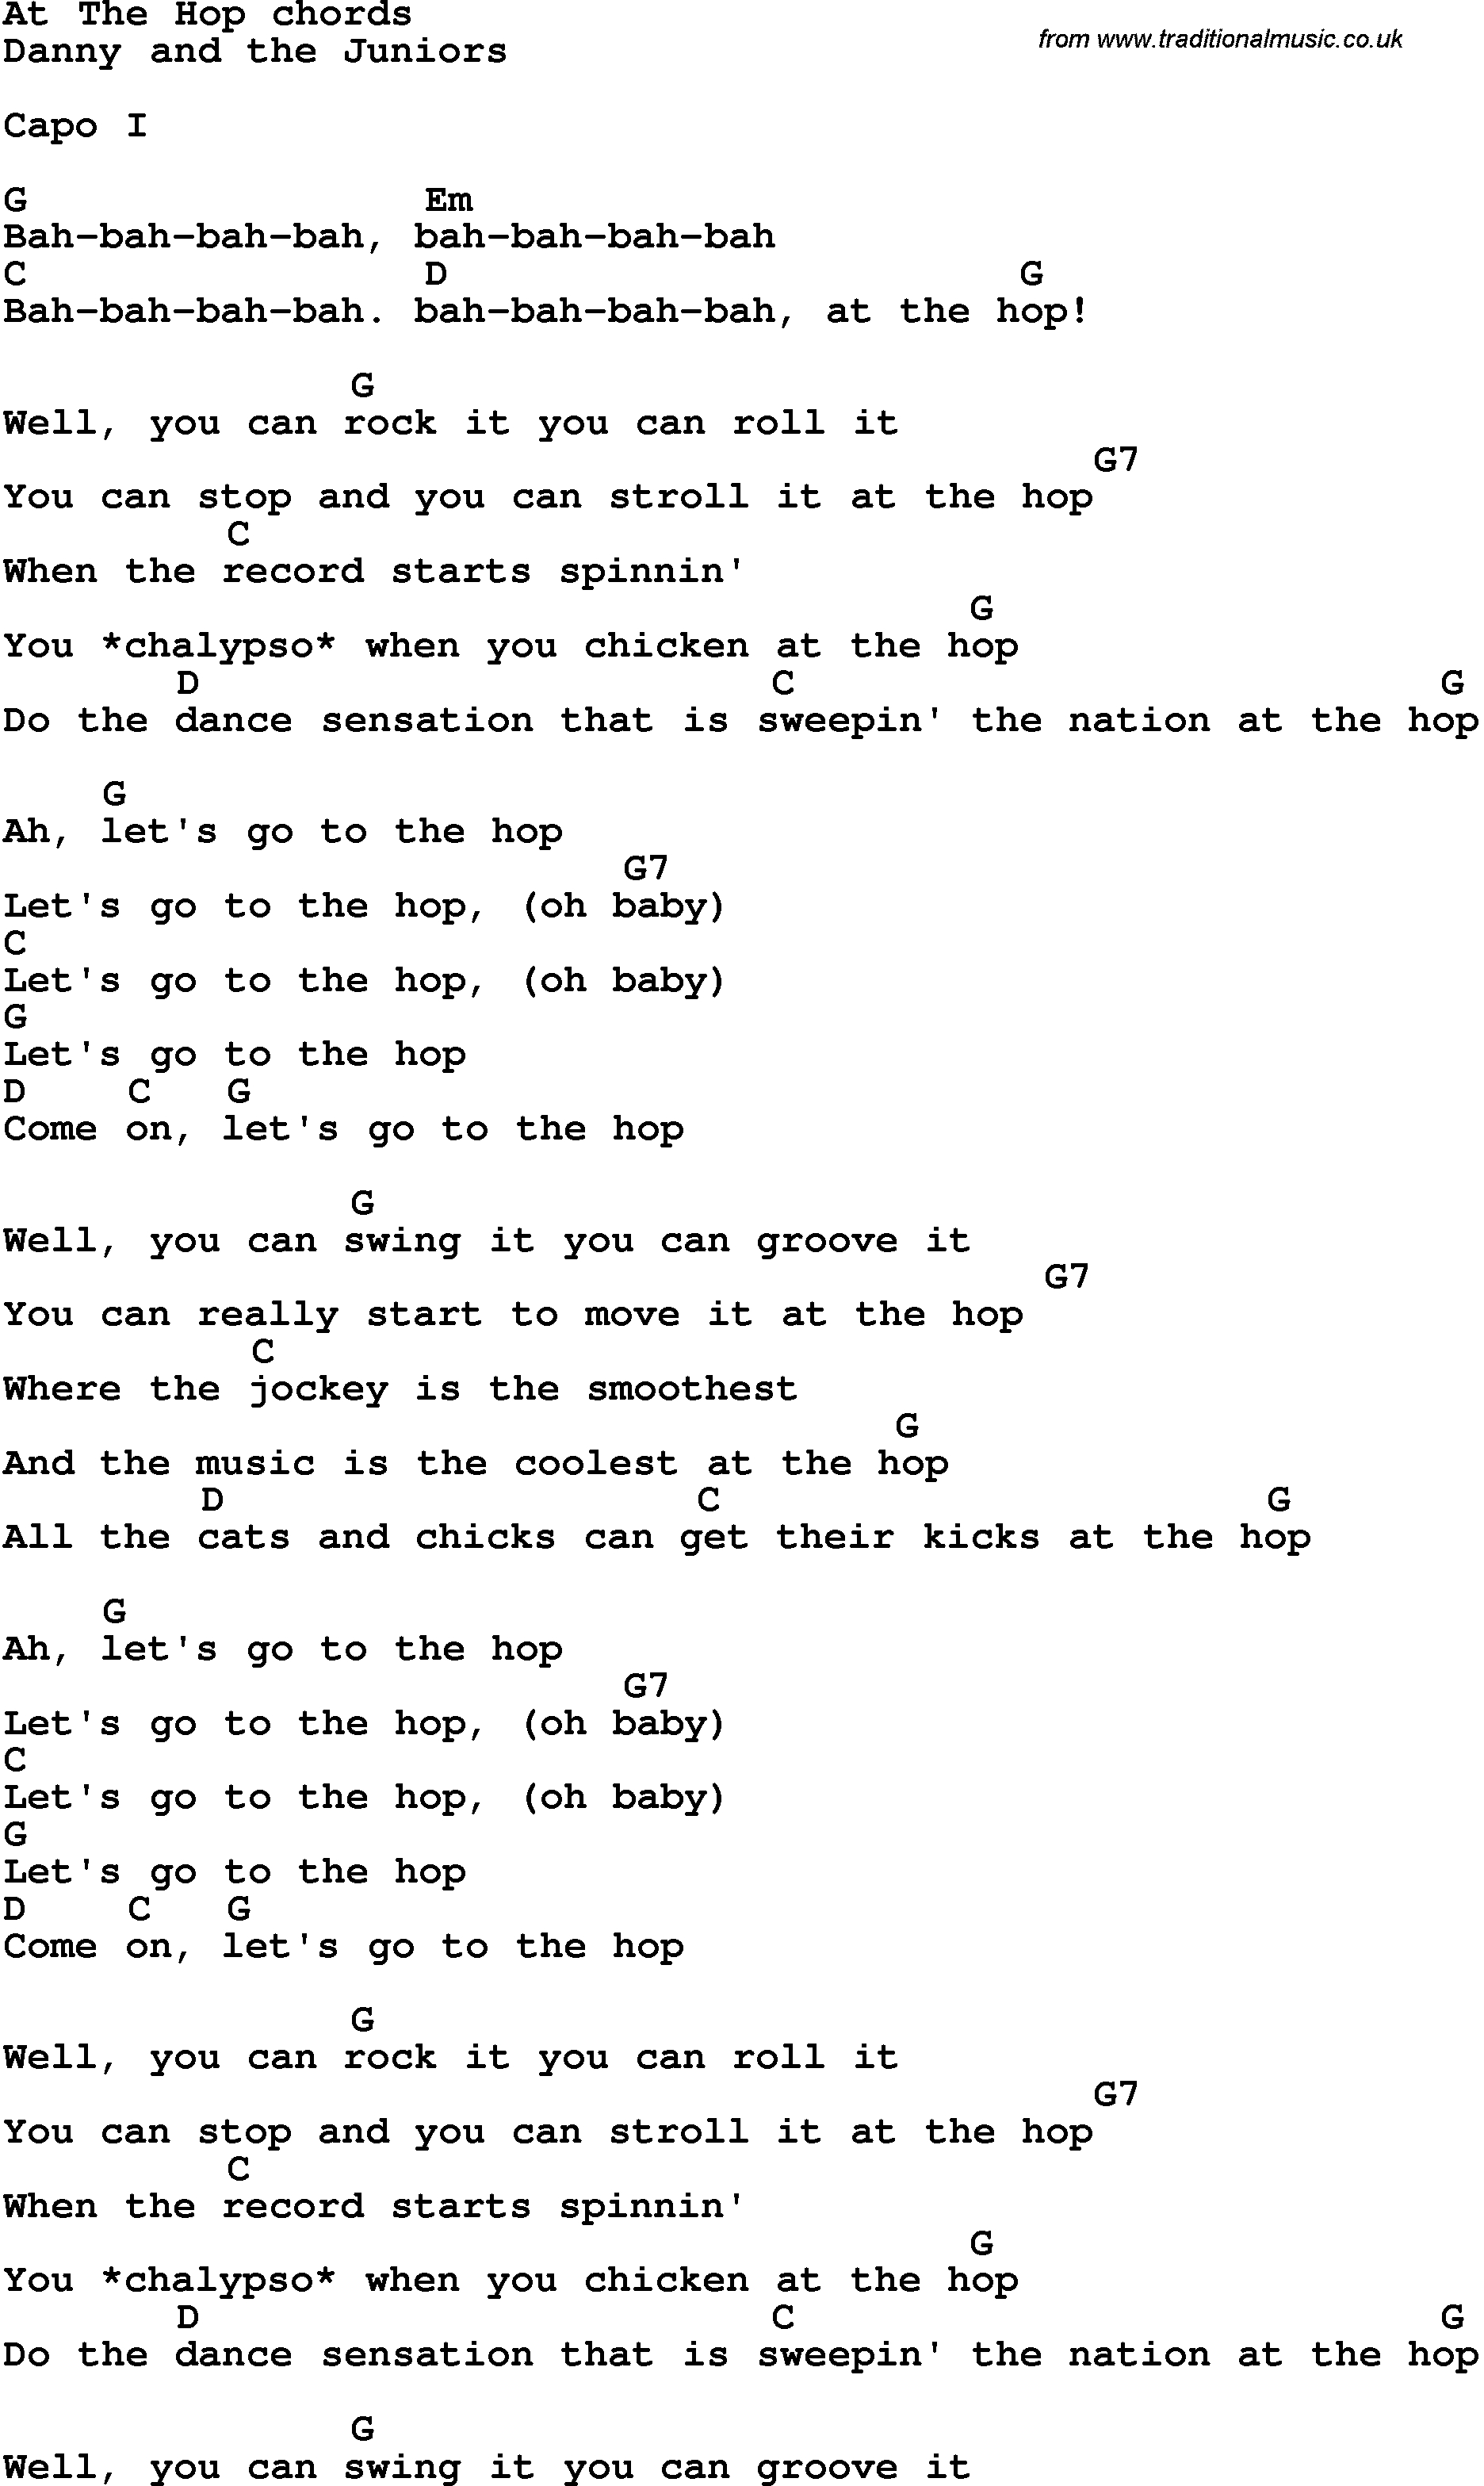 Song Lyrics With Guitar Chords For At The Hop | Music In 2019 - Free Printable Song Lyrics With Guitar Chords